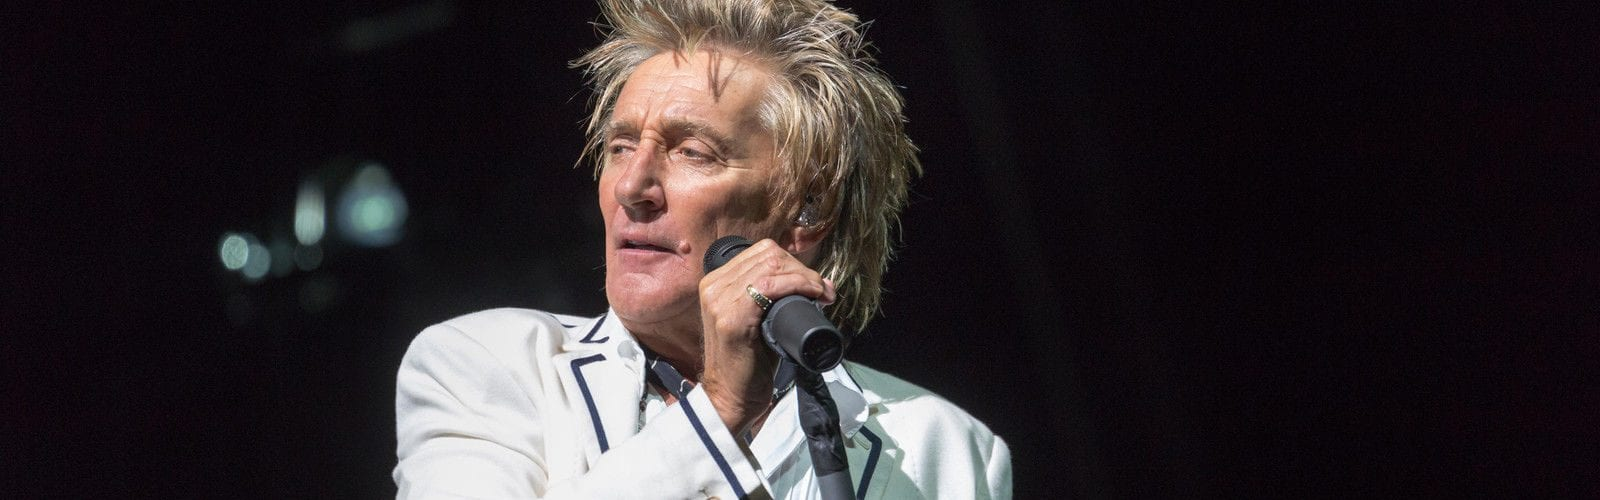 Pac-12 Tournaments, Rod Stewart in Vegas Lead Tuesday Onsales